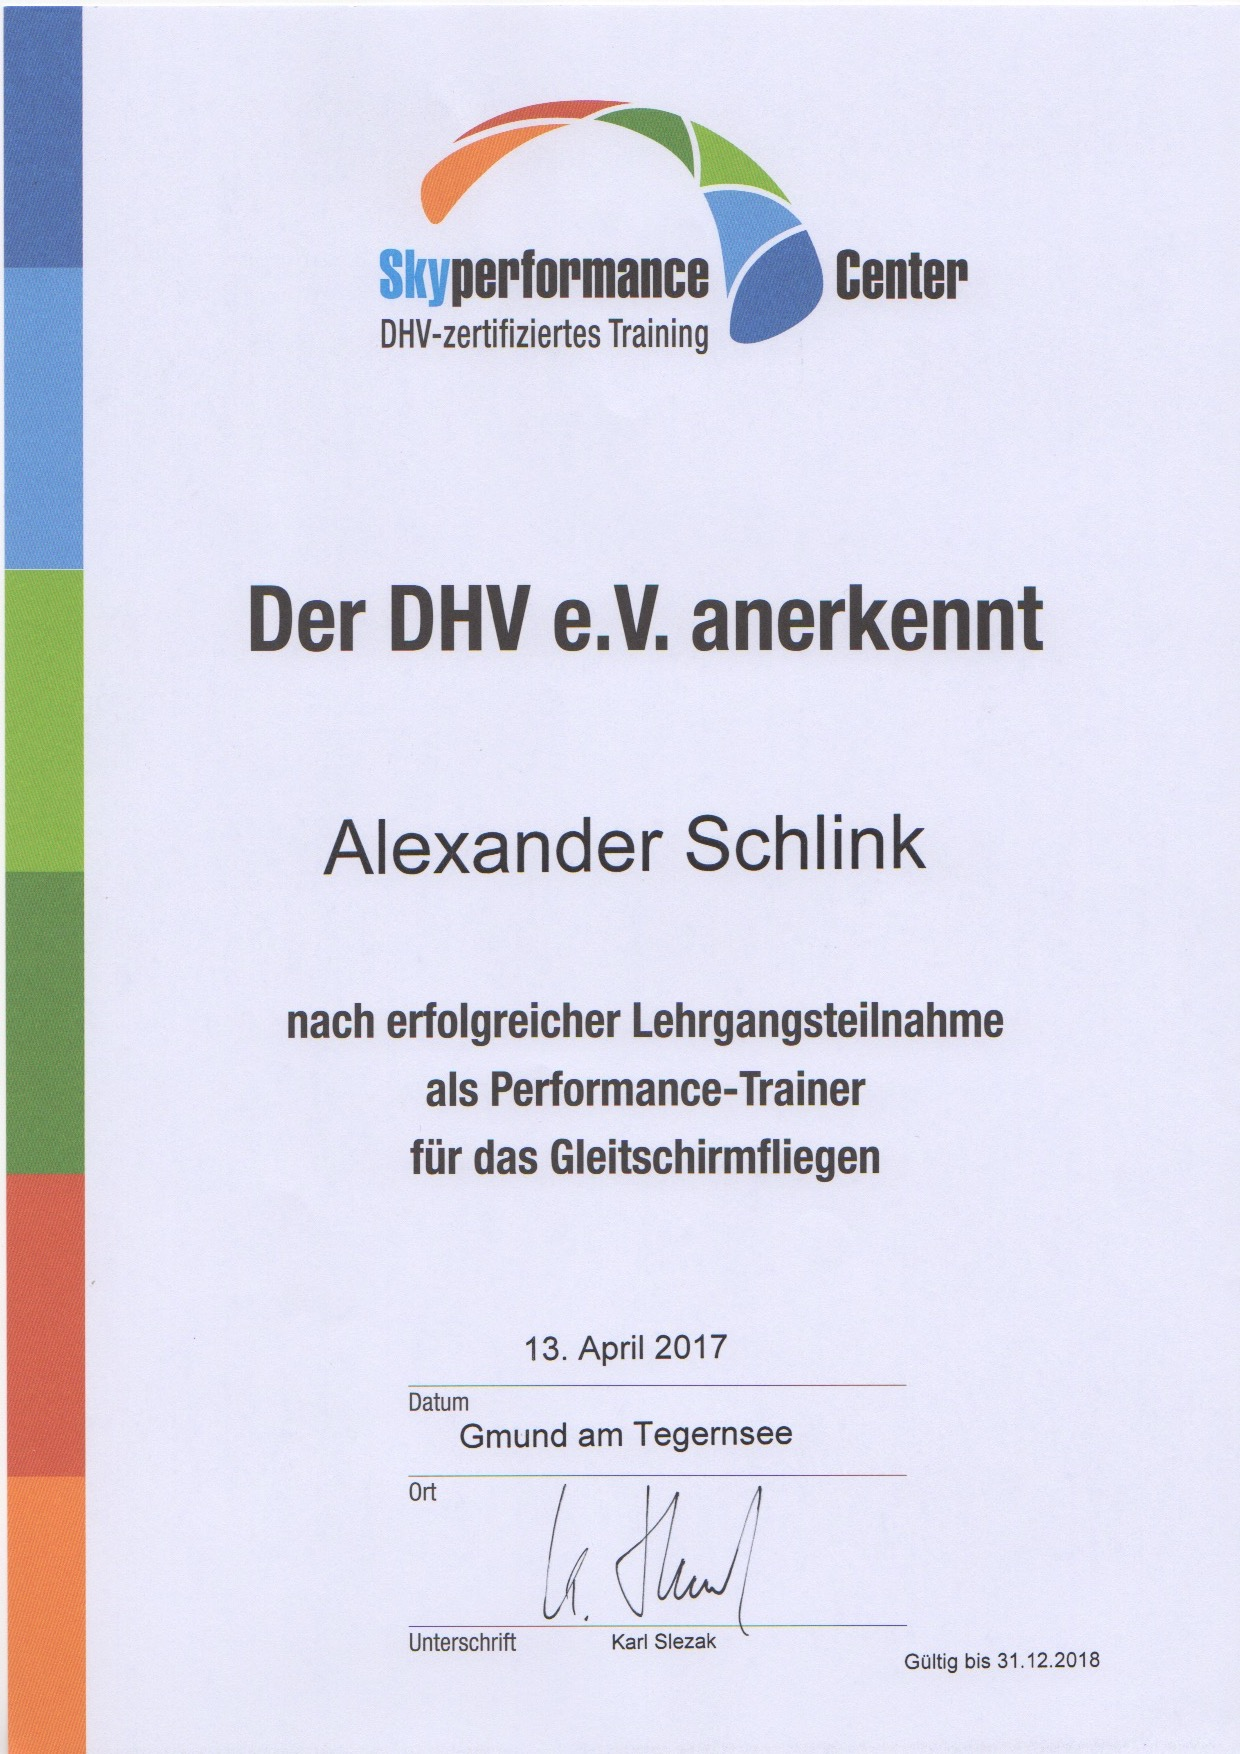 DHV Performance Trainer